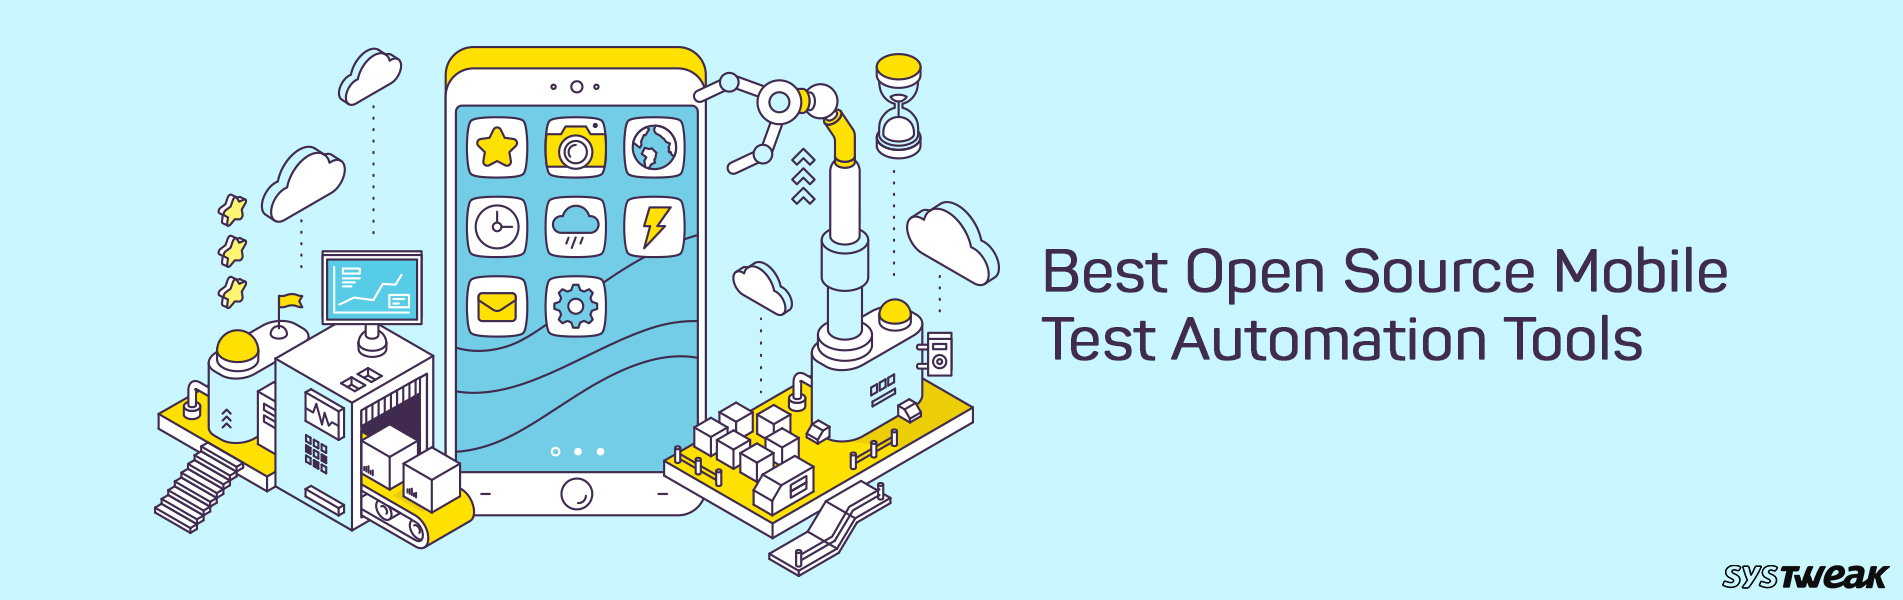 5 Best Open Source Mobile Test Automation Tools